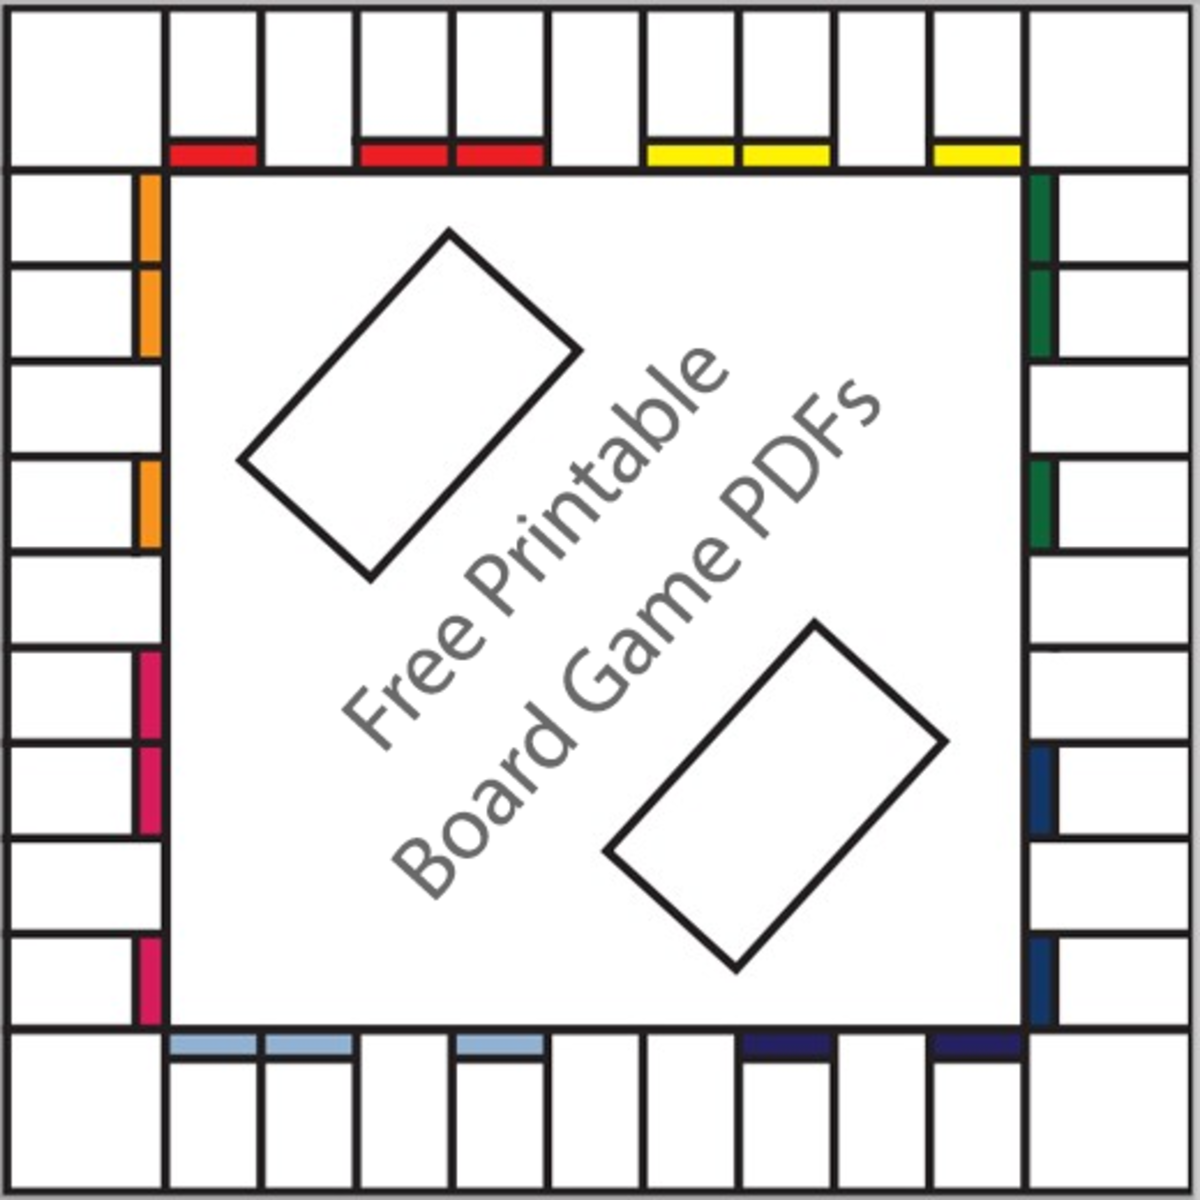 16 Free Printable Board Game Templates 5alkTJV2